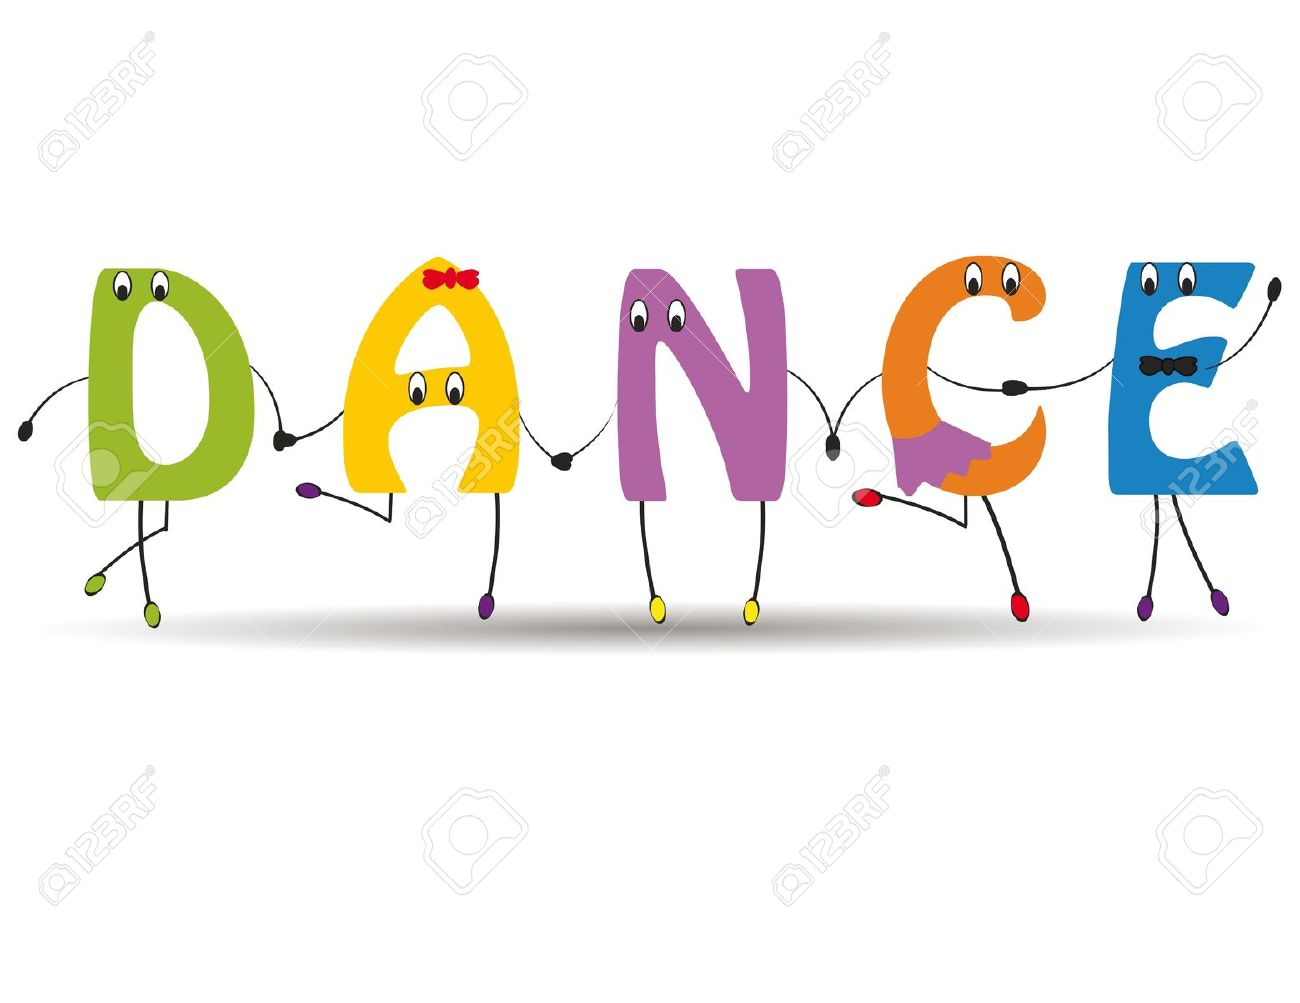 Kids dance clip art.